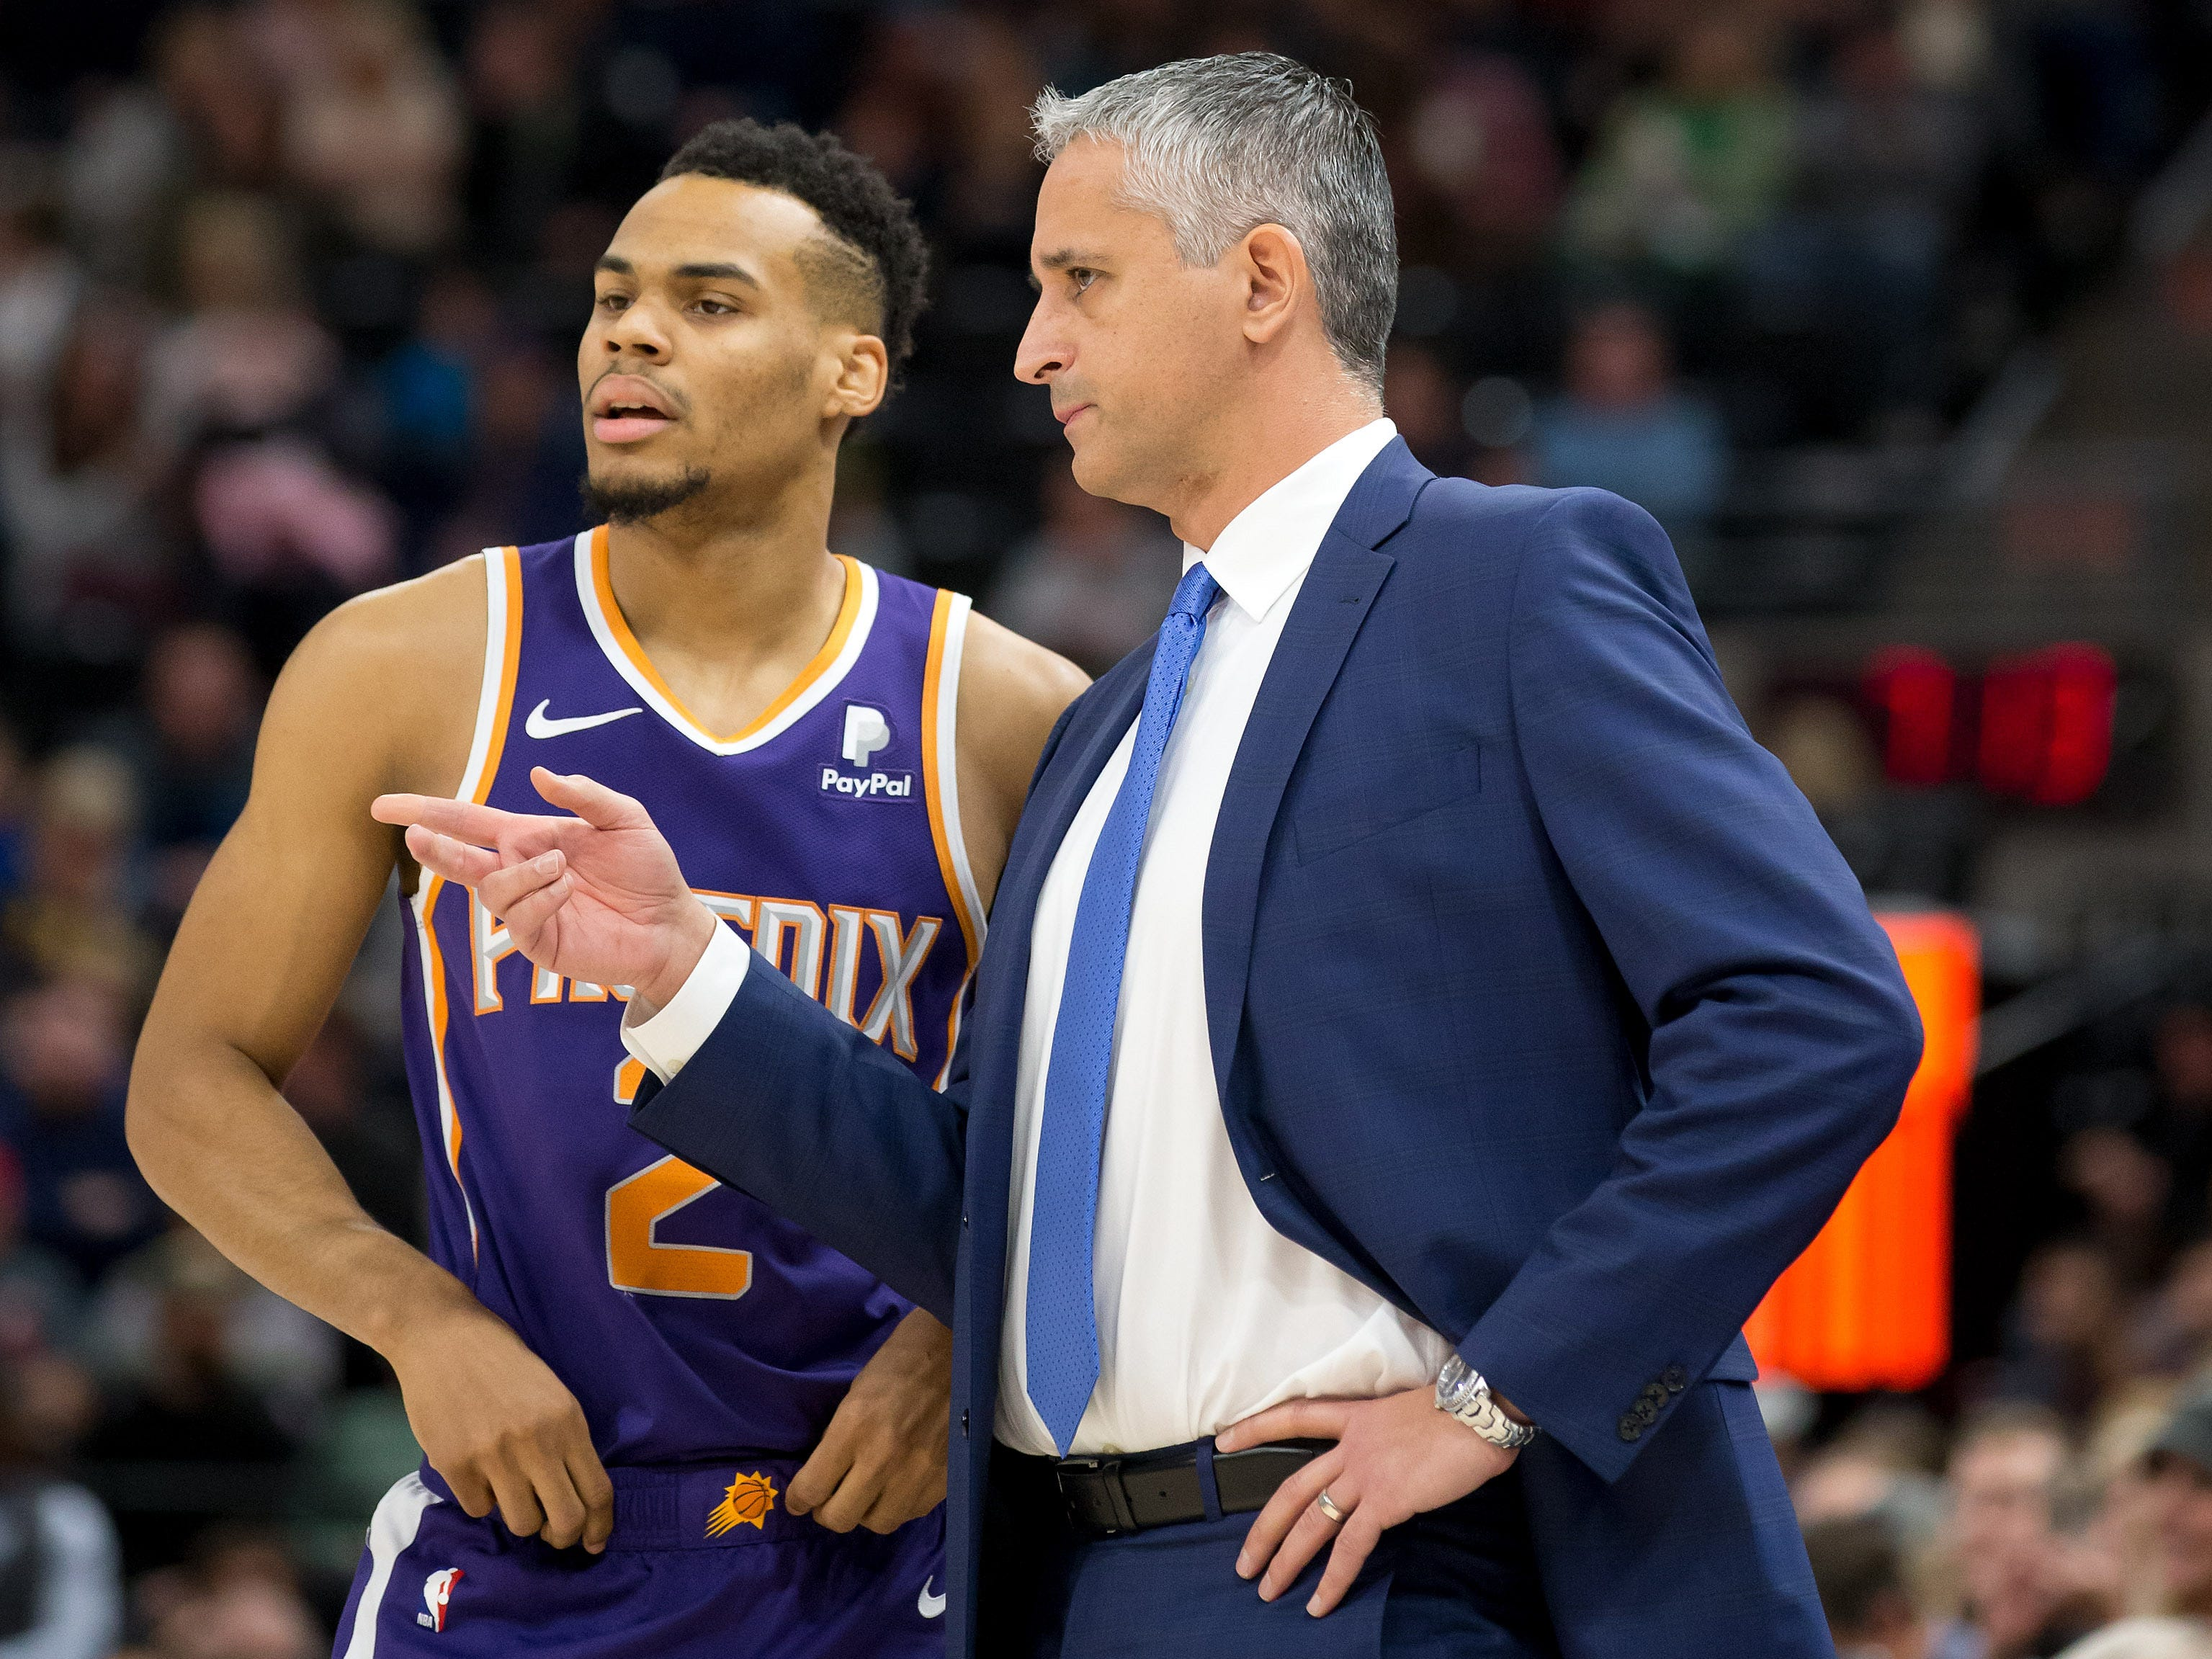 Feb 6, 2019; Salt Lake City, UT, USA; Phoenix Suns head coach Igor Kokoskov talks with guard Elie Okobo (2) during the first quarter against the Utah Jazz at Vivint Smart Home Arena. Mandatory Credit: Russ Isabella-USA TODAY Sports